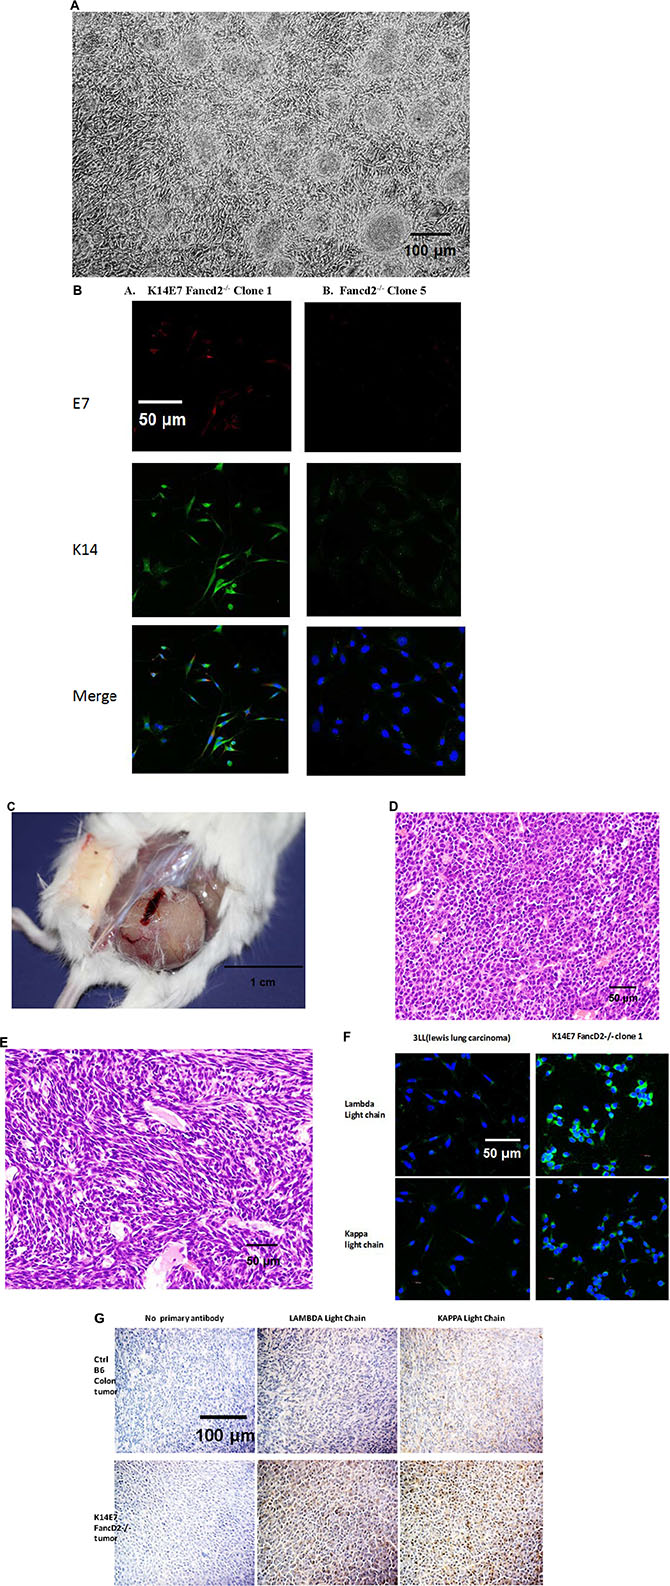 Morphology and immunohistochemistry for immunoglobulin kappa and lambda light chain in K14E7 Fancd2−/− clone 1 IL-3-dependent tumor forming cell lines.